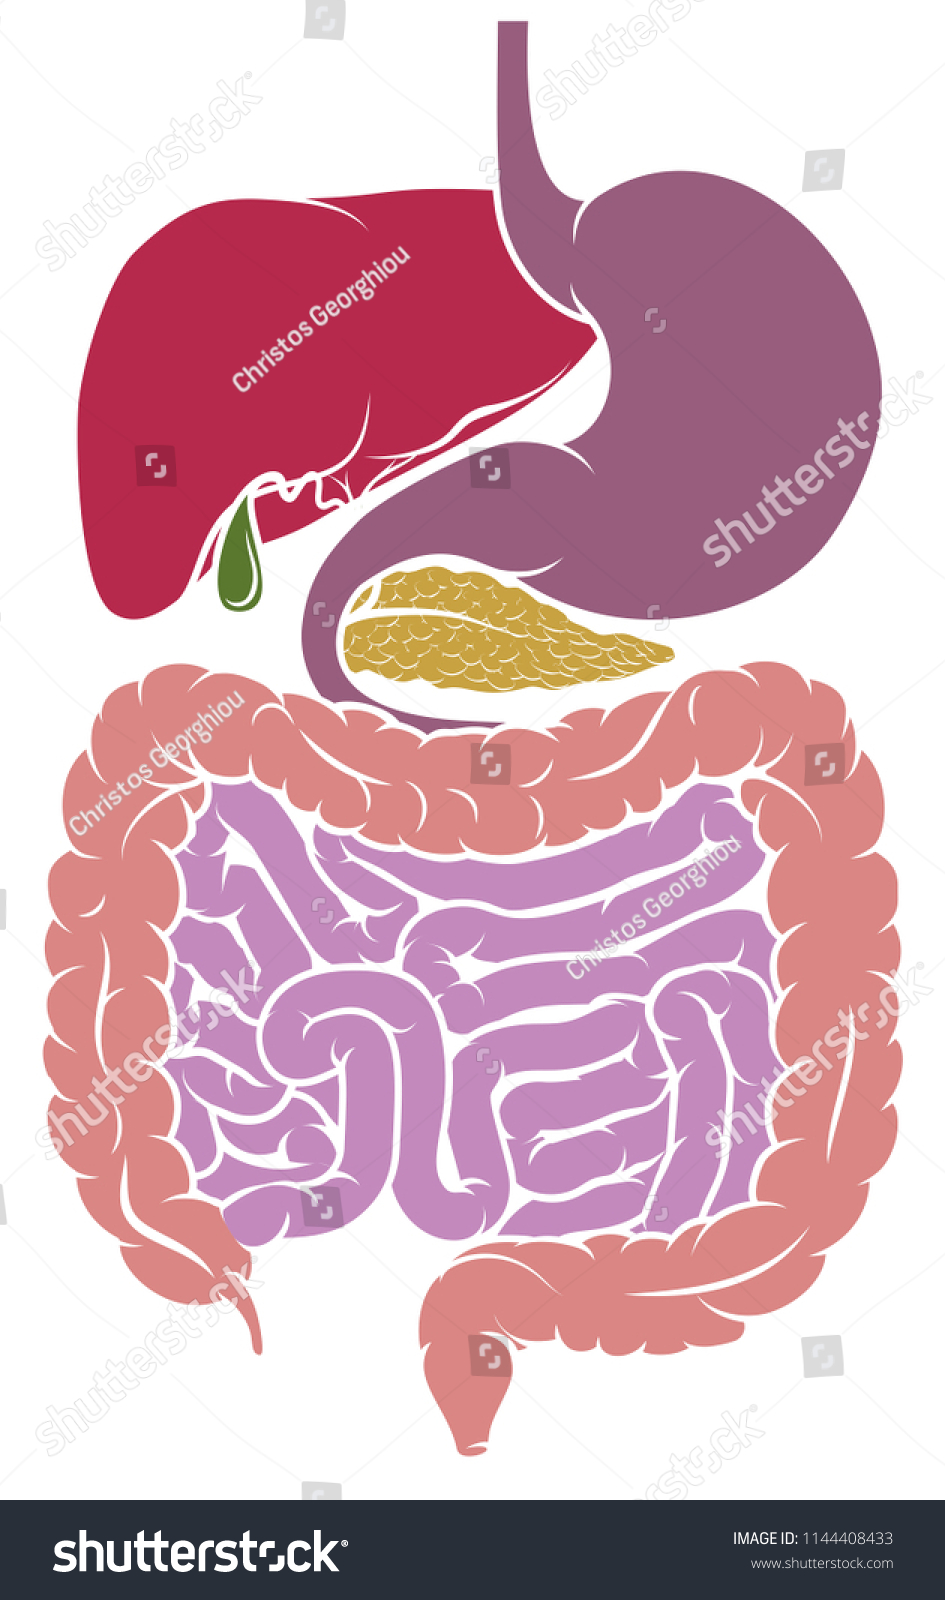 Gastrointestinal Tract Digestive System Human Anatomy Stock Vector ...